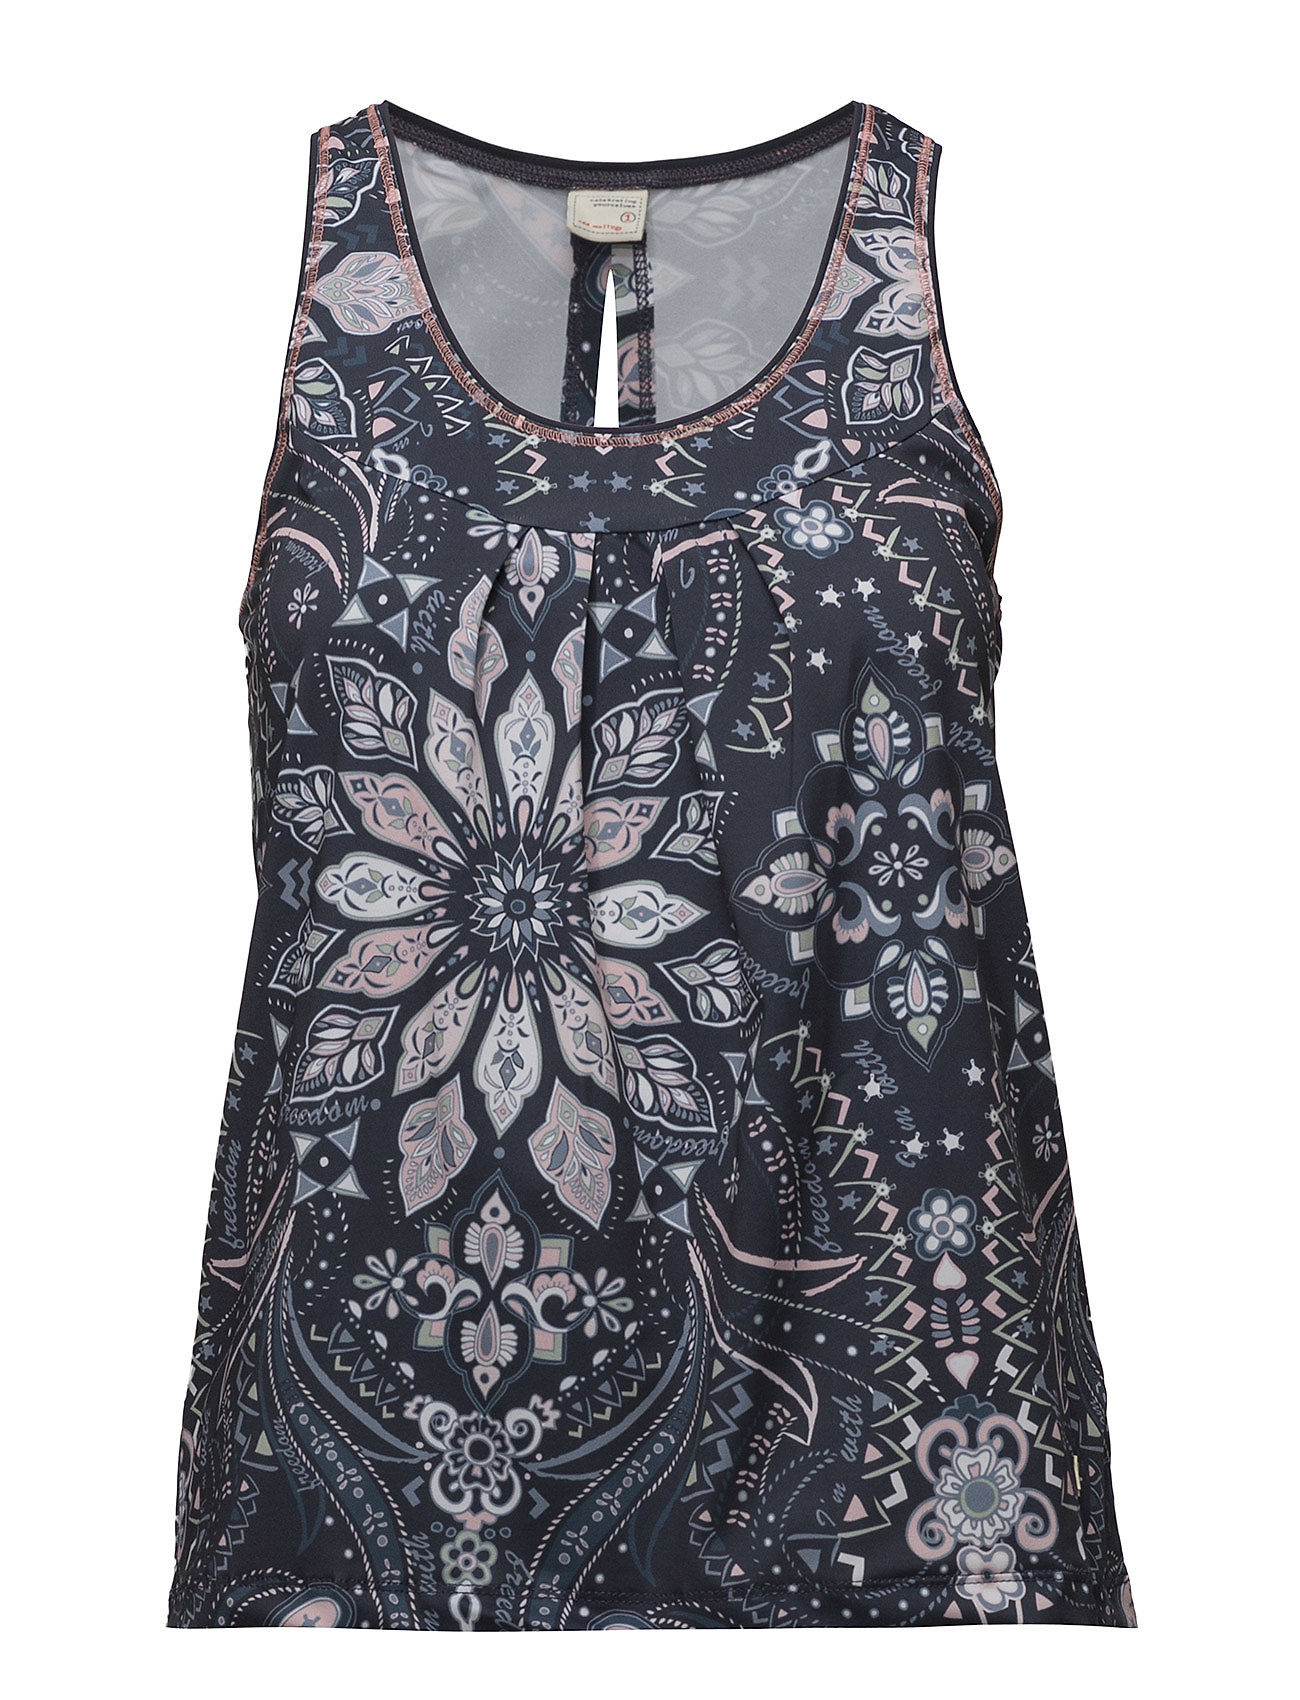 ODD MOLLY ACTIVE WEAR sweat it tank top